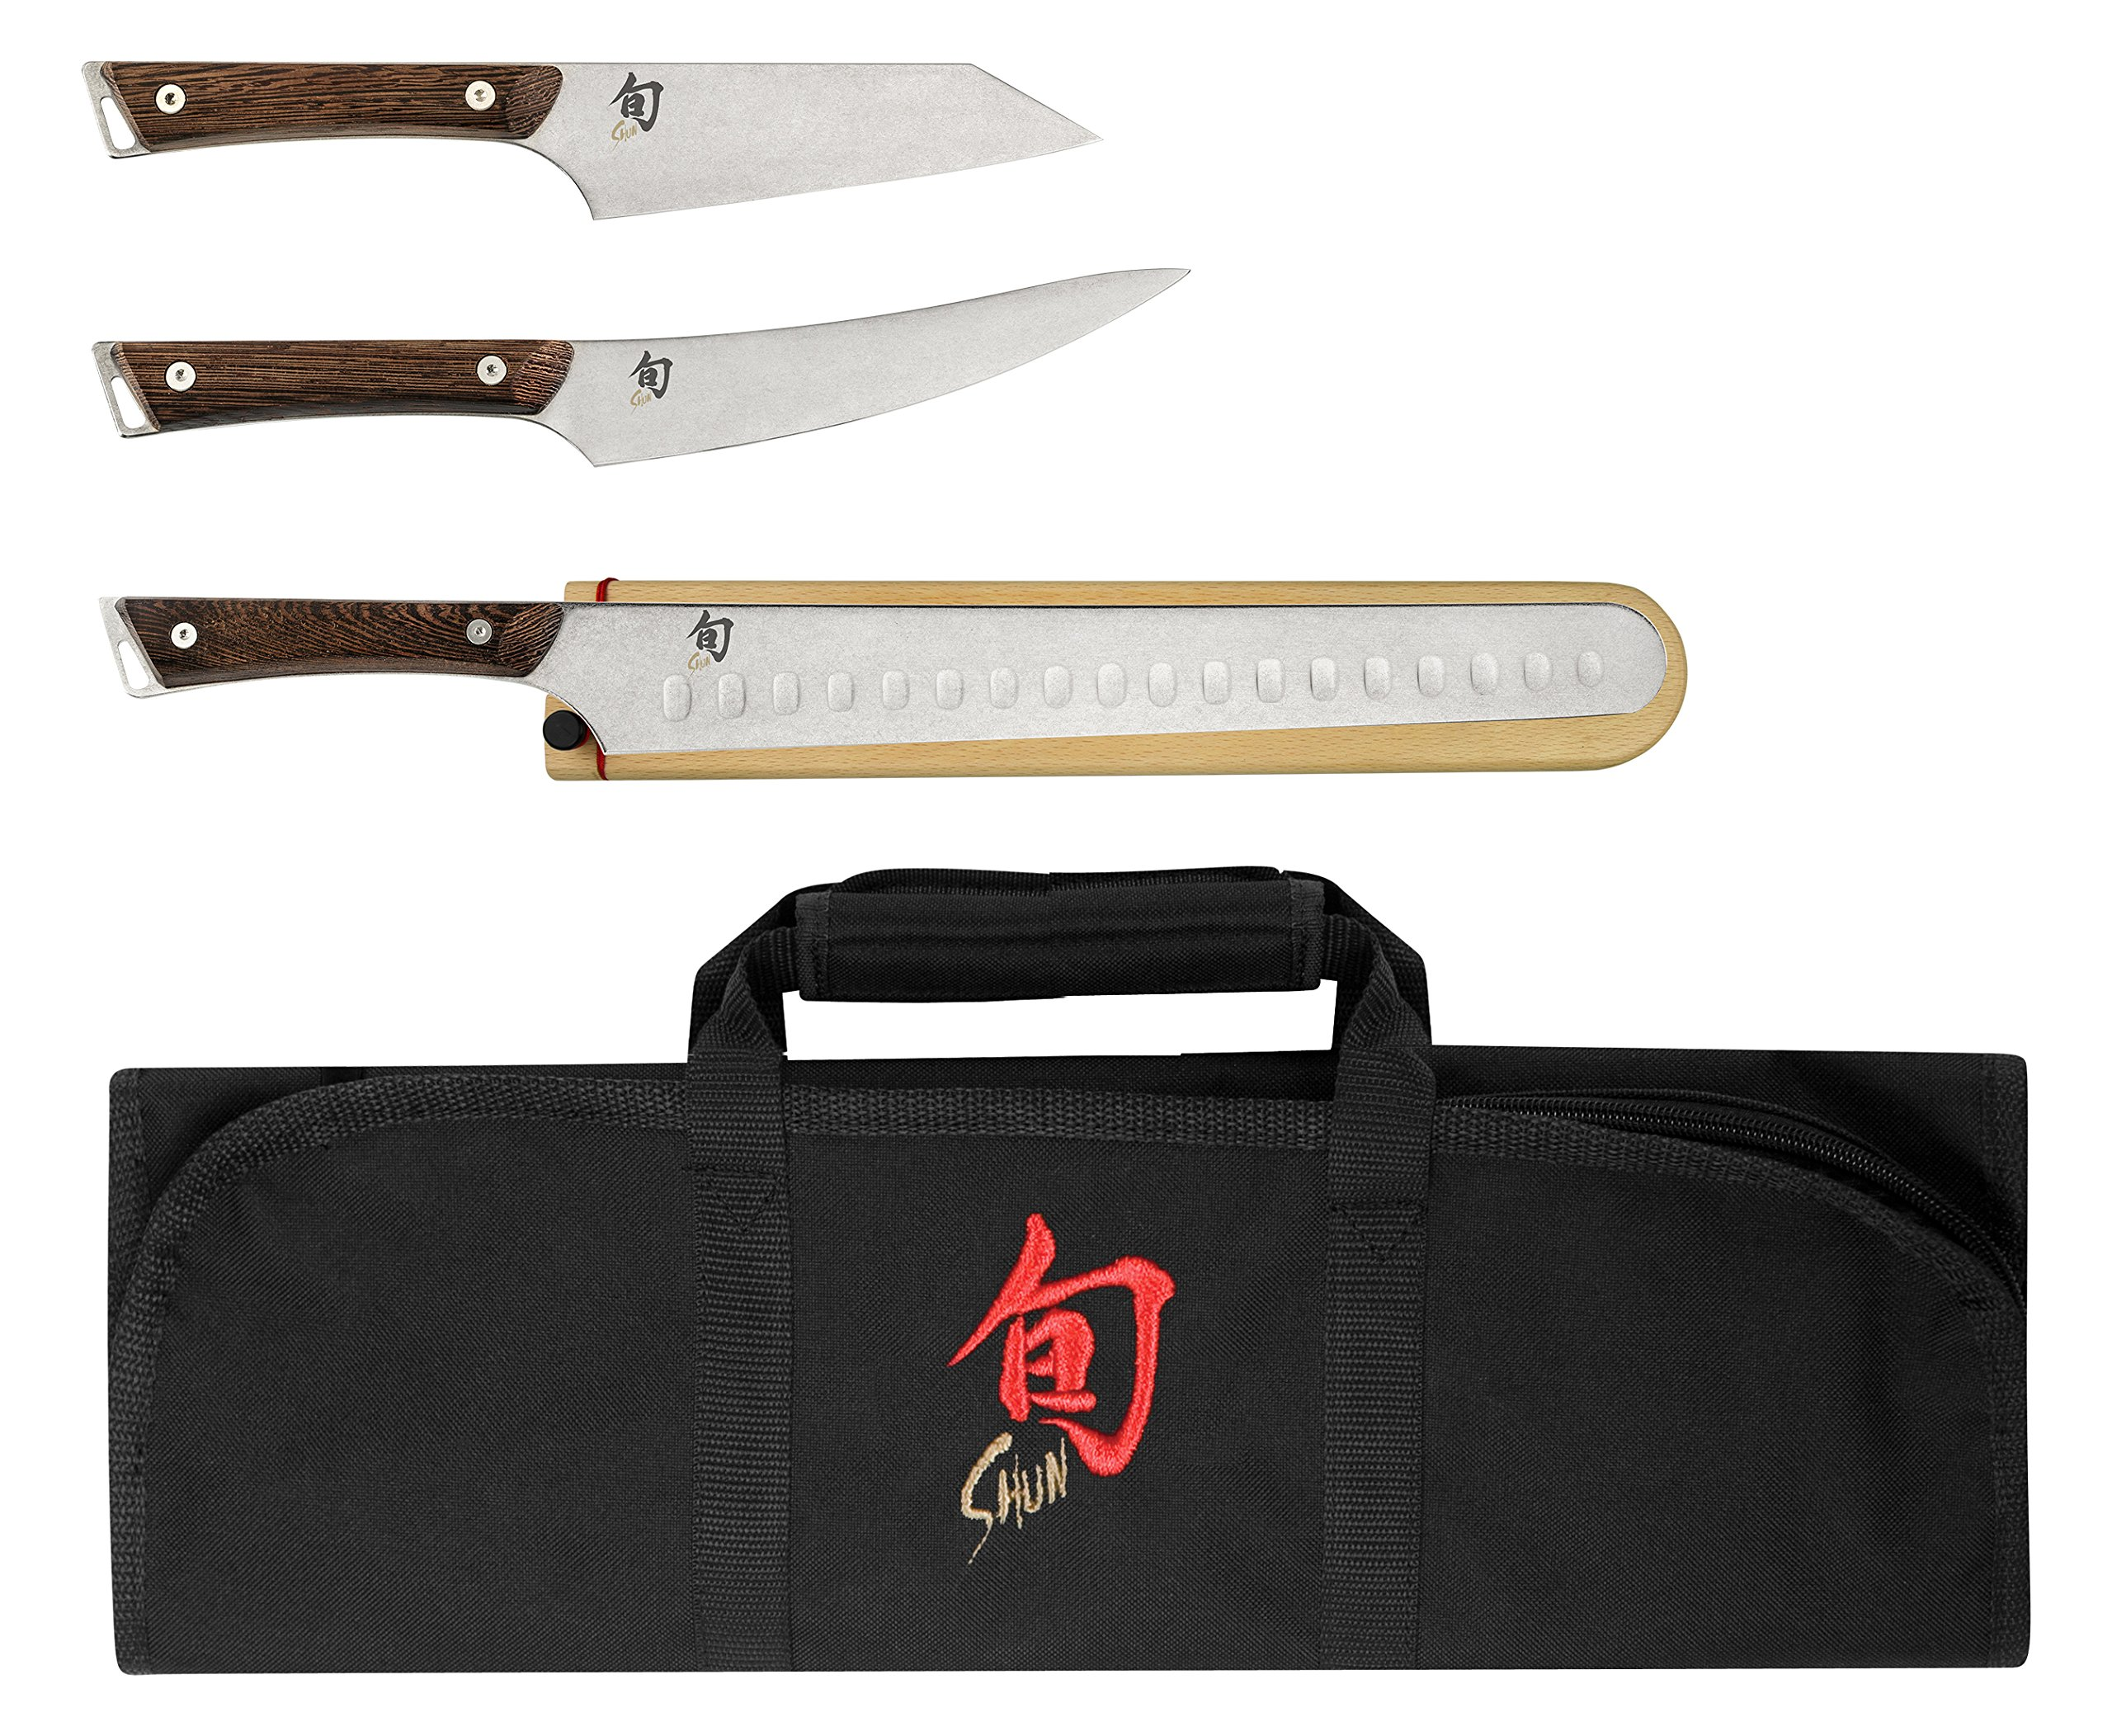 Shun SWTS0450 Japanese Cutlery Kanso 4-Piece BBQ Knives Set, One size, Silver